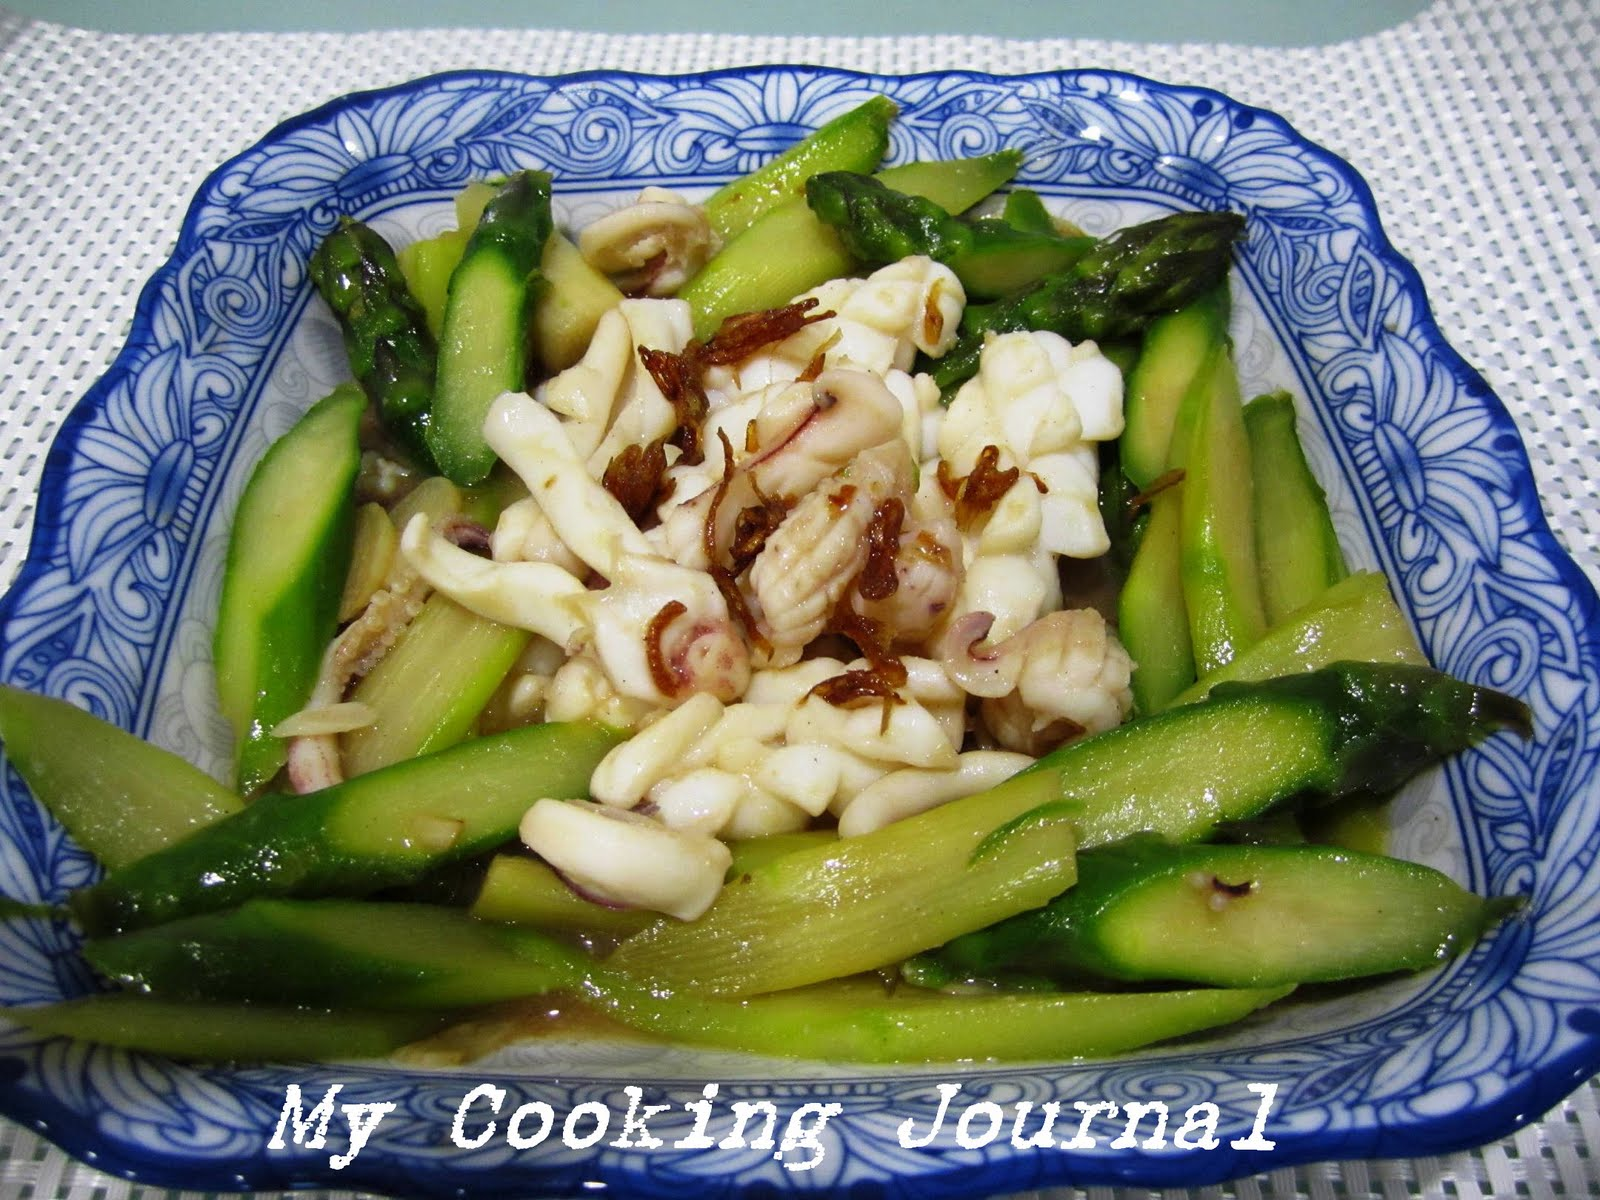 Mummyloveblog my cooking journal 21 chinese style stir fry my cooking journal 21 chinese style stir fry asparagus with fresh squid ccuart Gallery